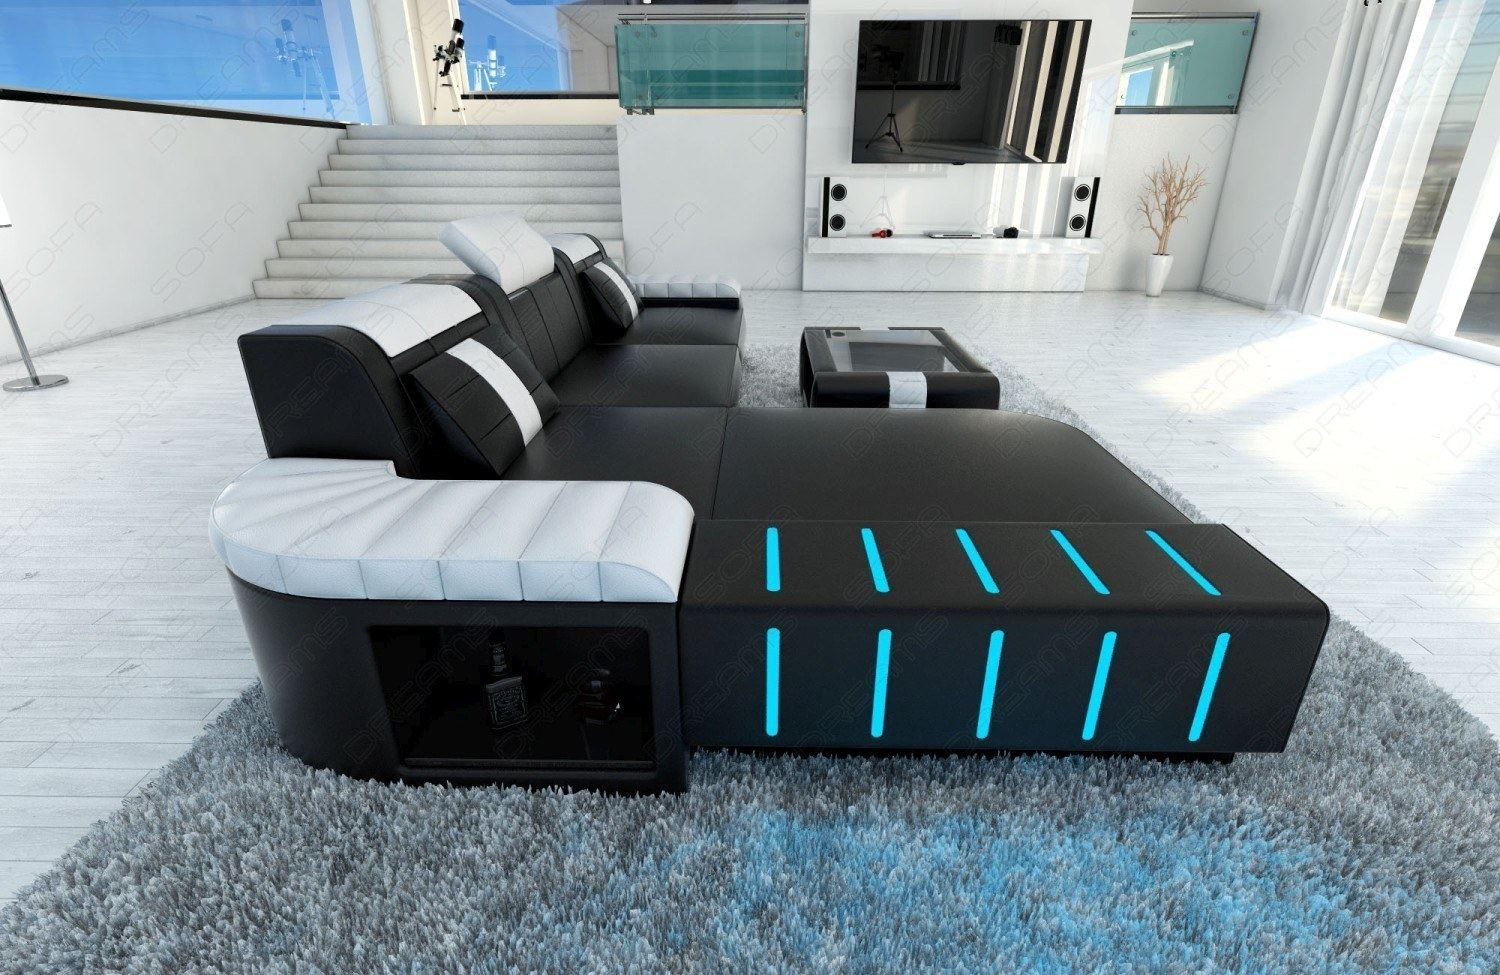 Modern sofa bellagio led l shaped black white ebay for Ecksofa ebay kleinanzeigen